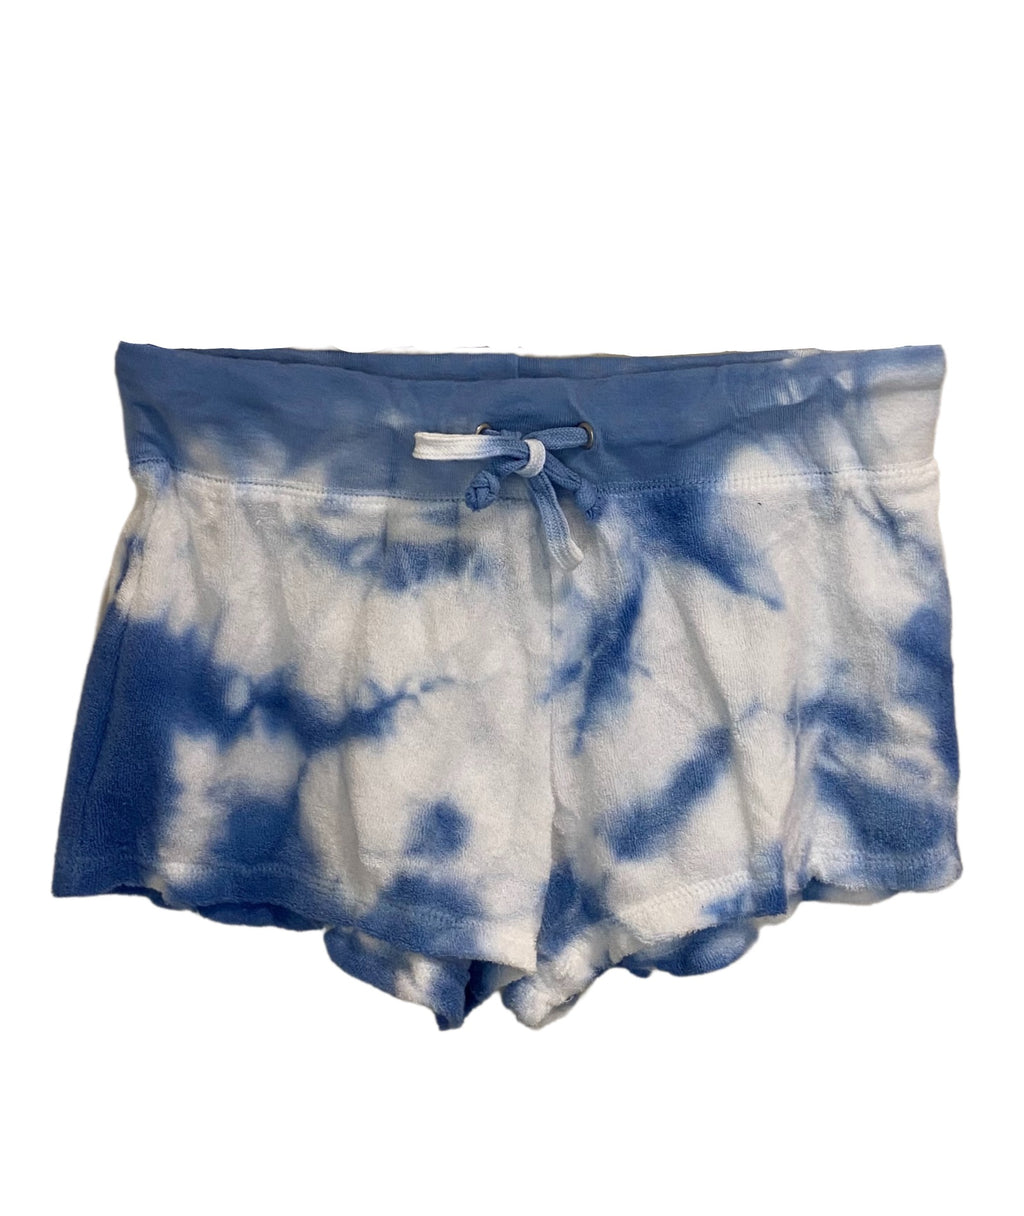 Love Junkie Girls Tie Dye Terry Shorts Cerulean